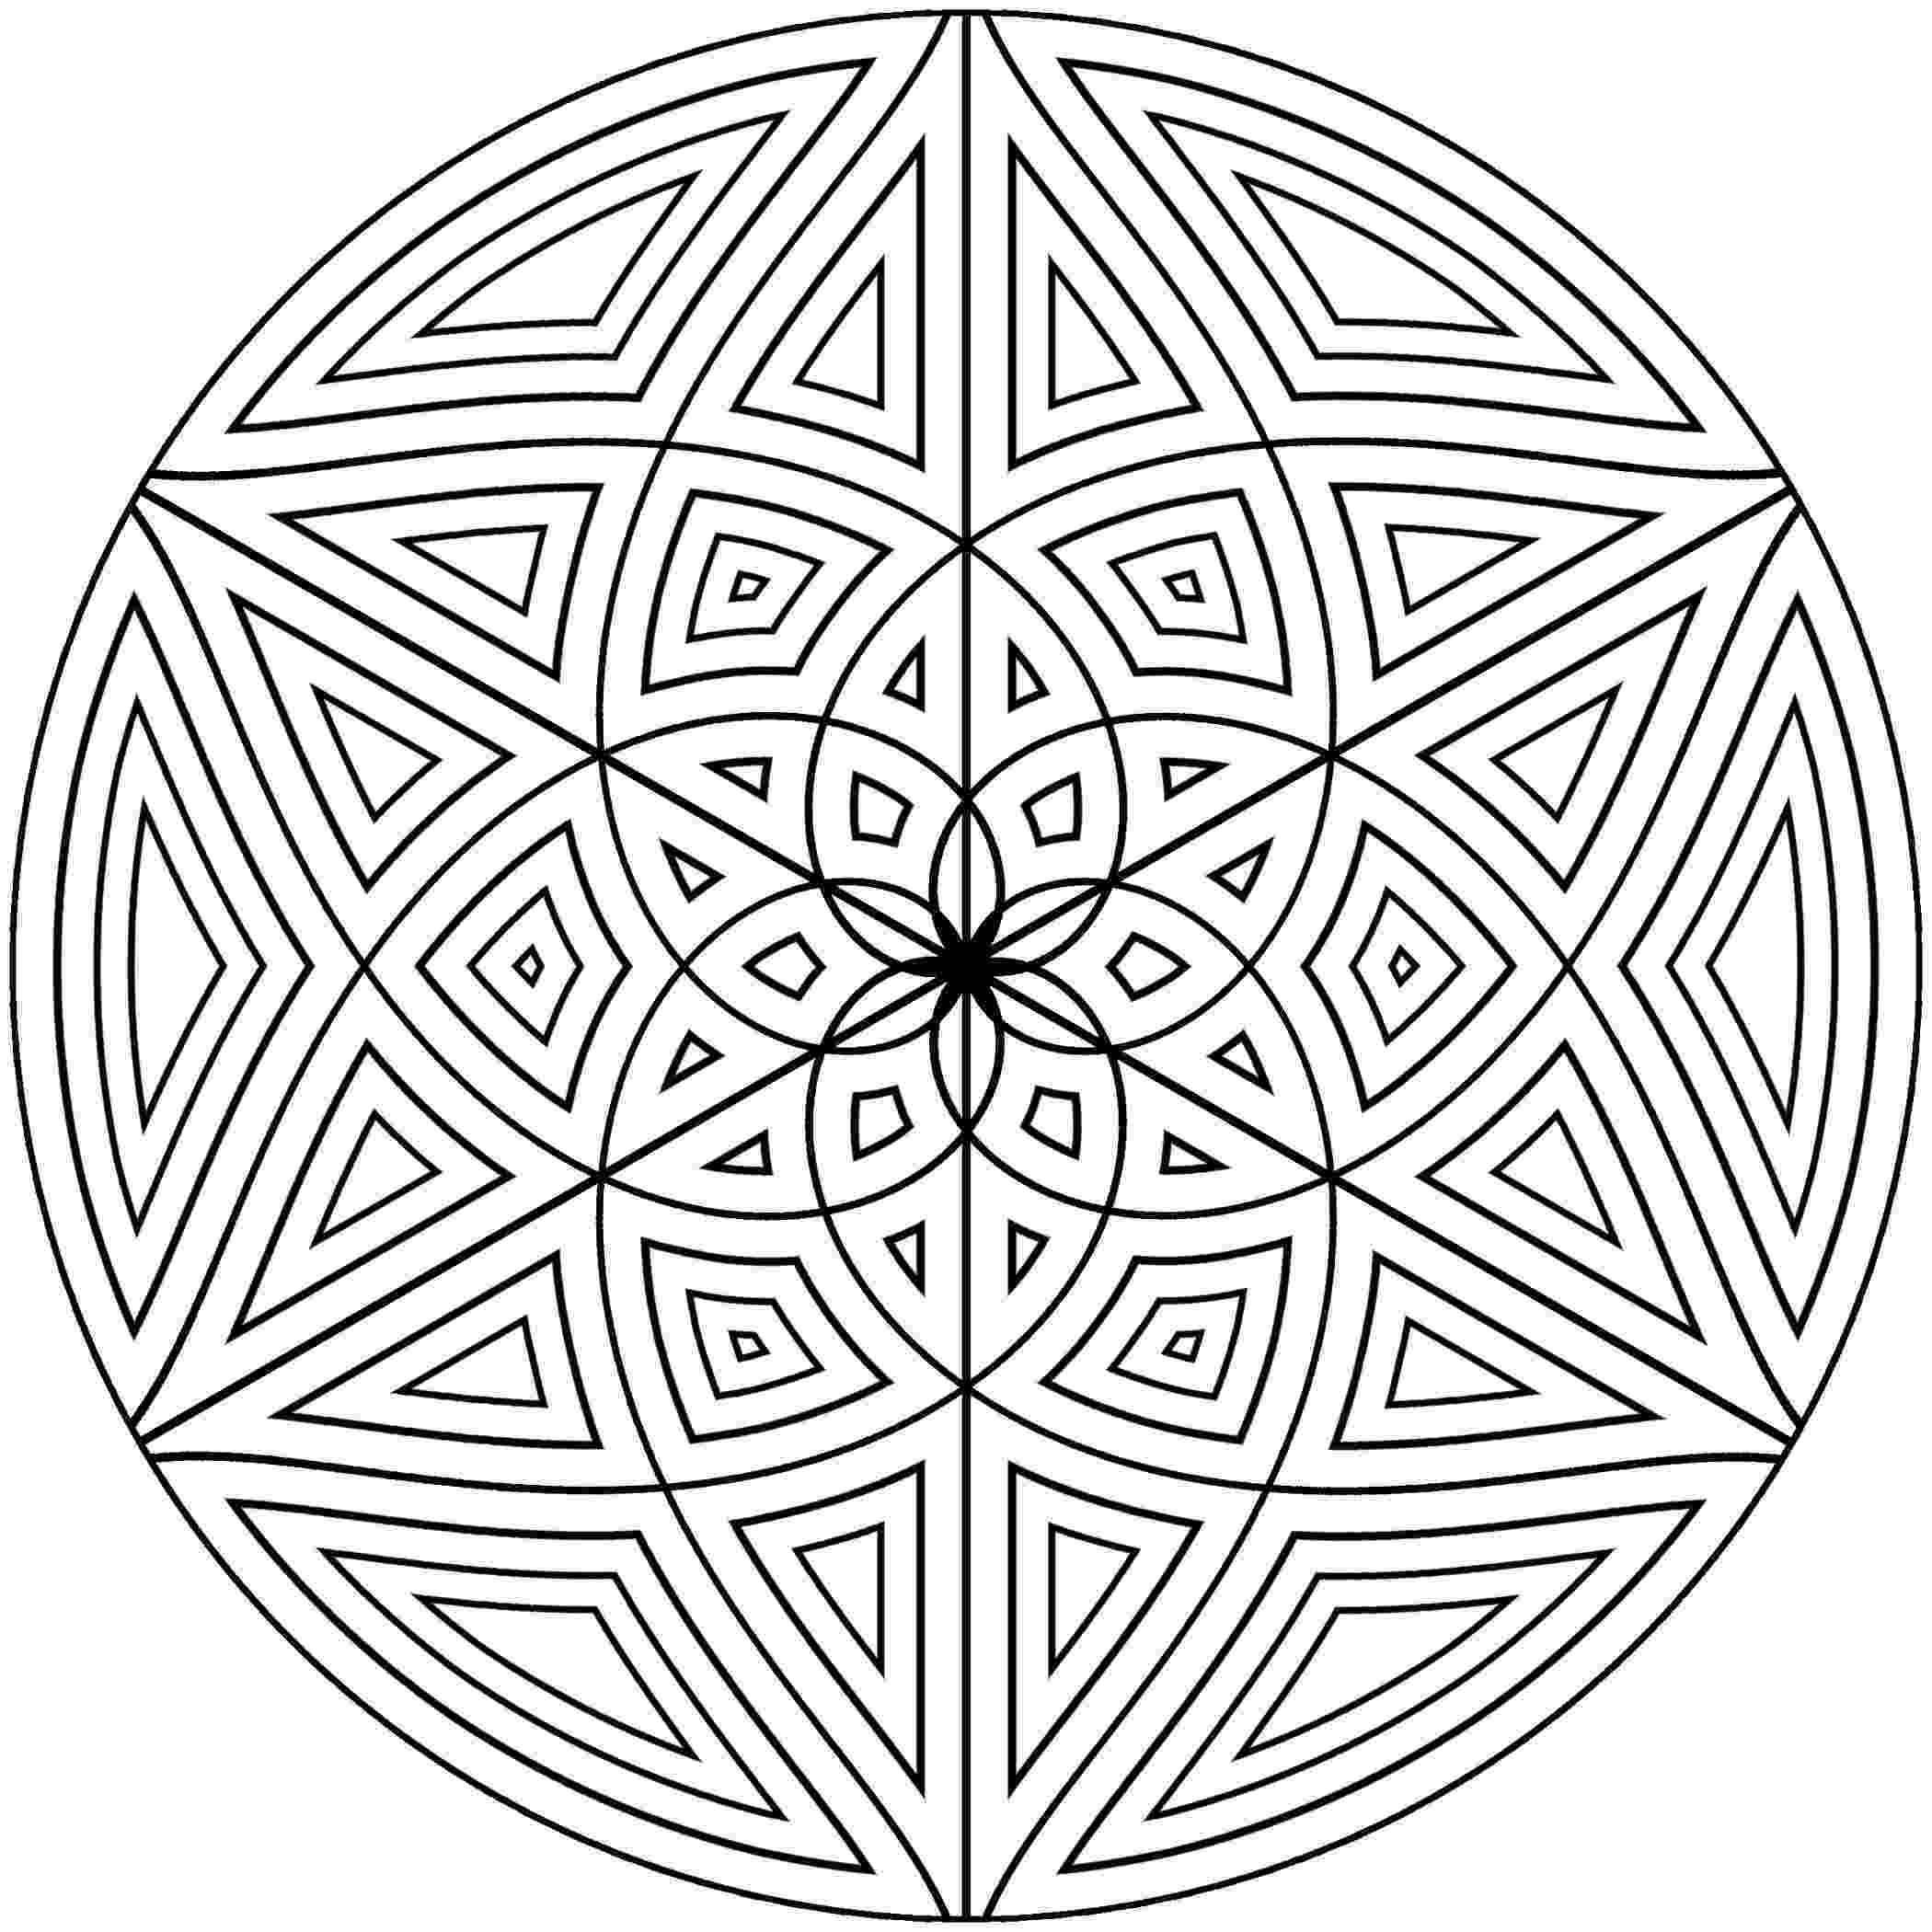 free printable coloring pages for adults geometric geometric coloring pages for adults az coloring pages printable geometric coloring free for adults pages